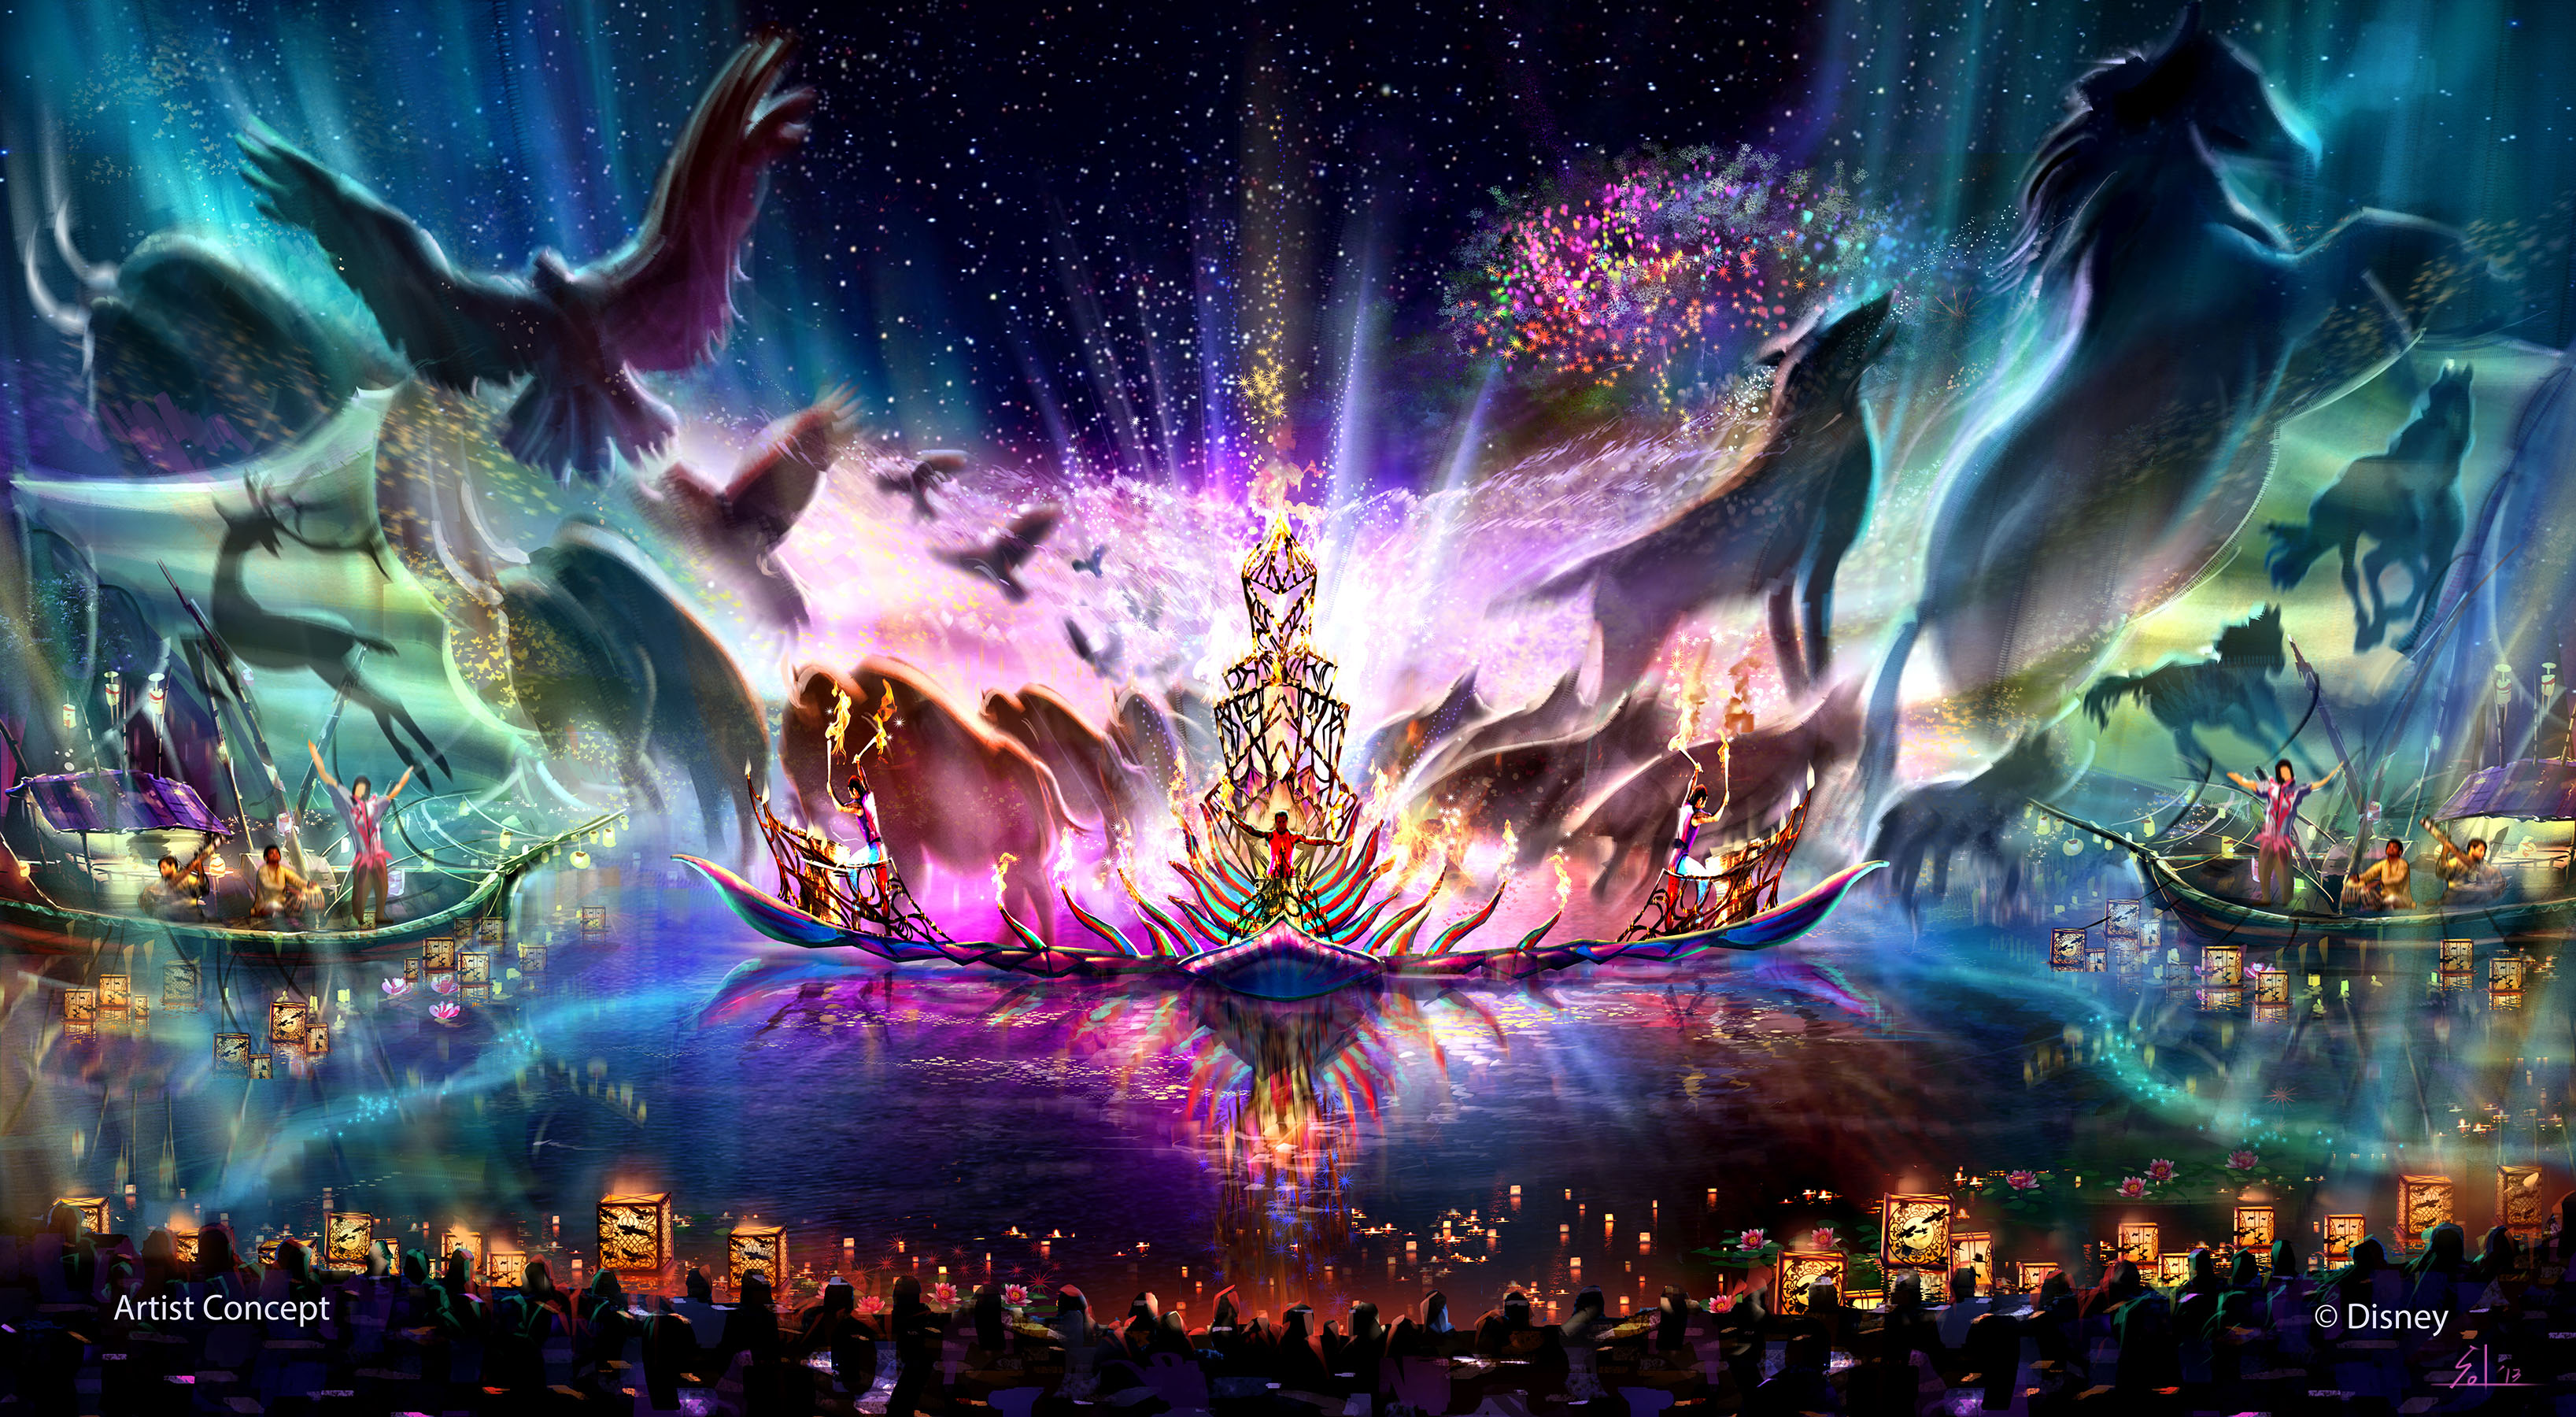 Disney's Animal Kingdom – Rivers of Light Opening in 2016